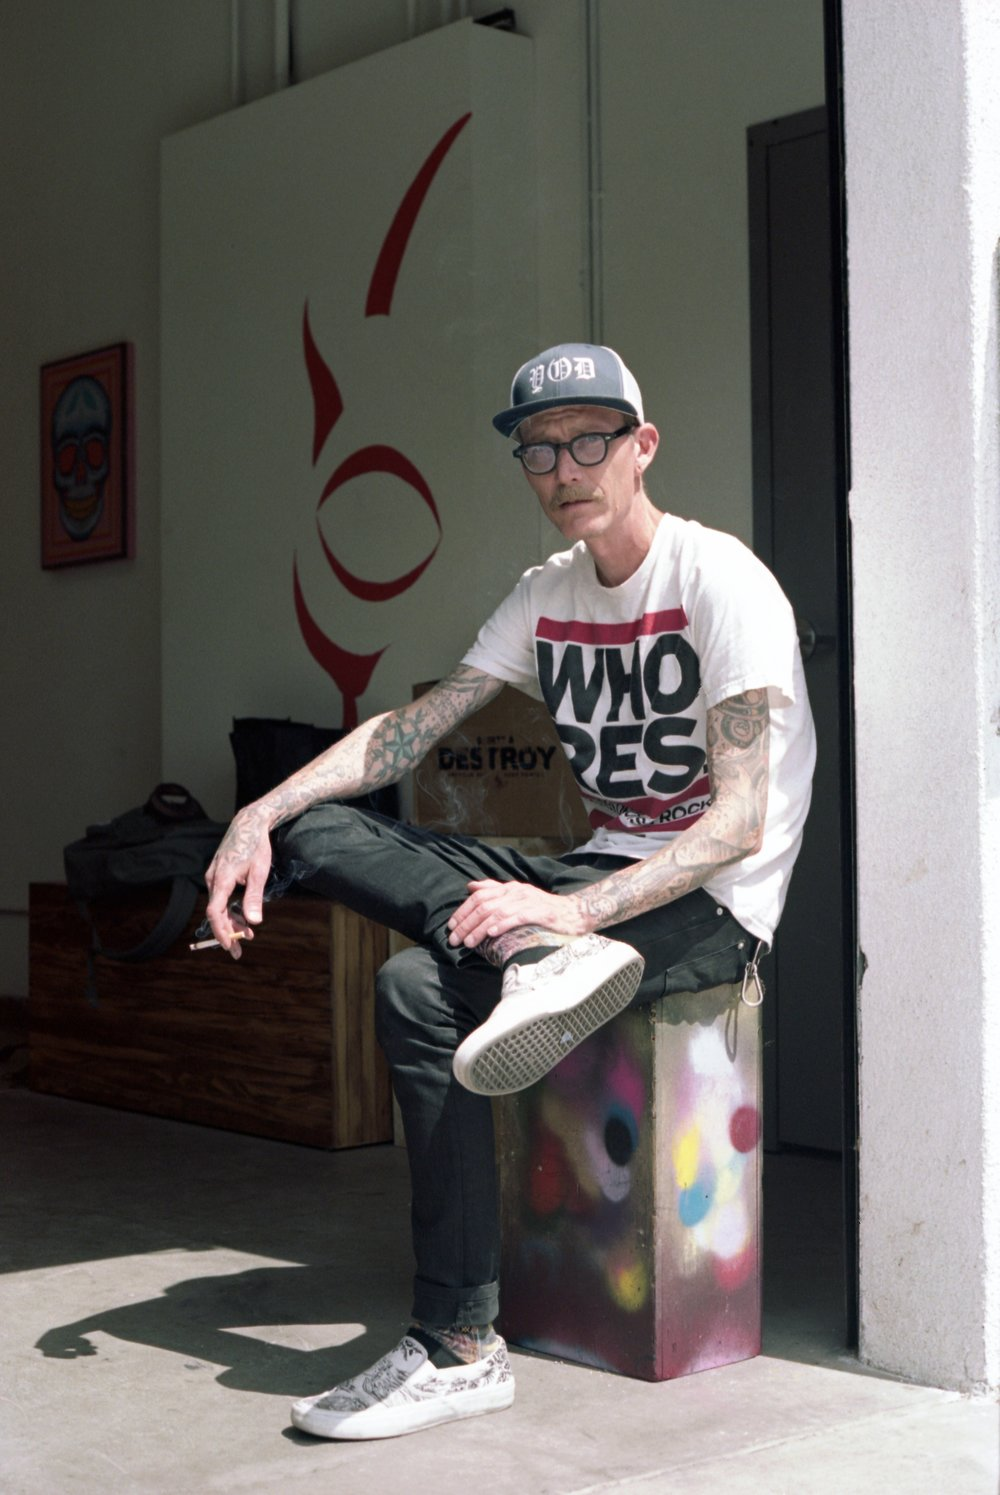 ARTIST DAVID COOK IN HIS LOS ANGELES STUDIO.